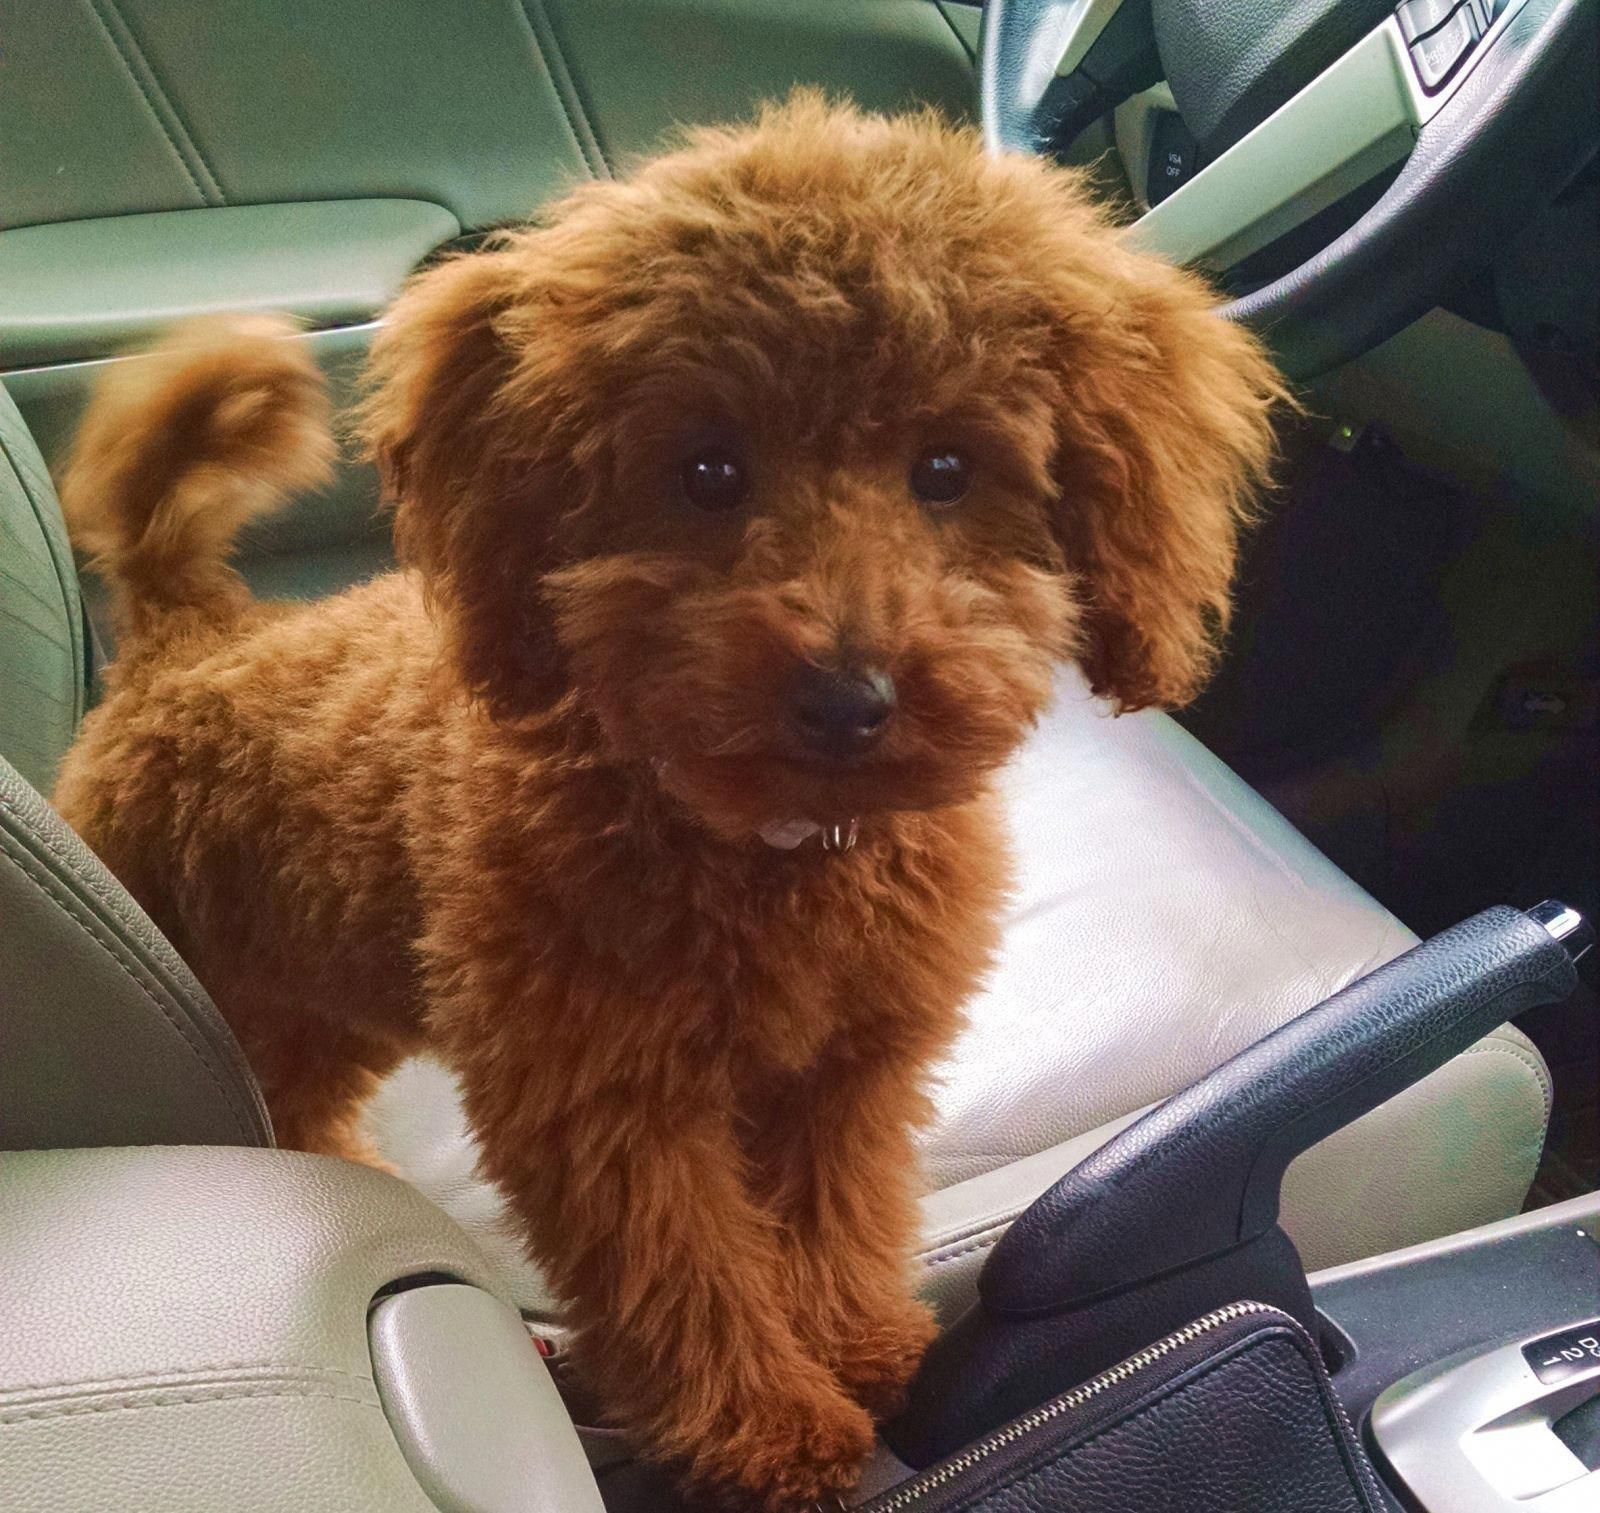 Best clips for puppies vs adults? Poodle Forum